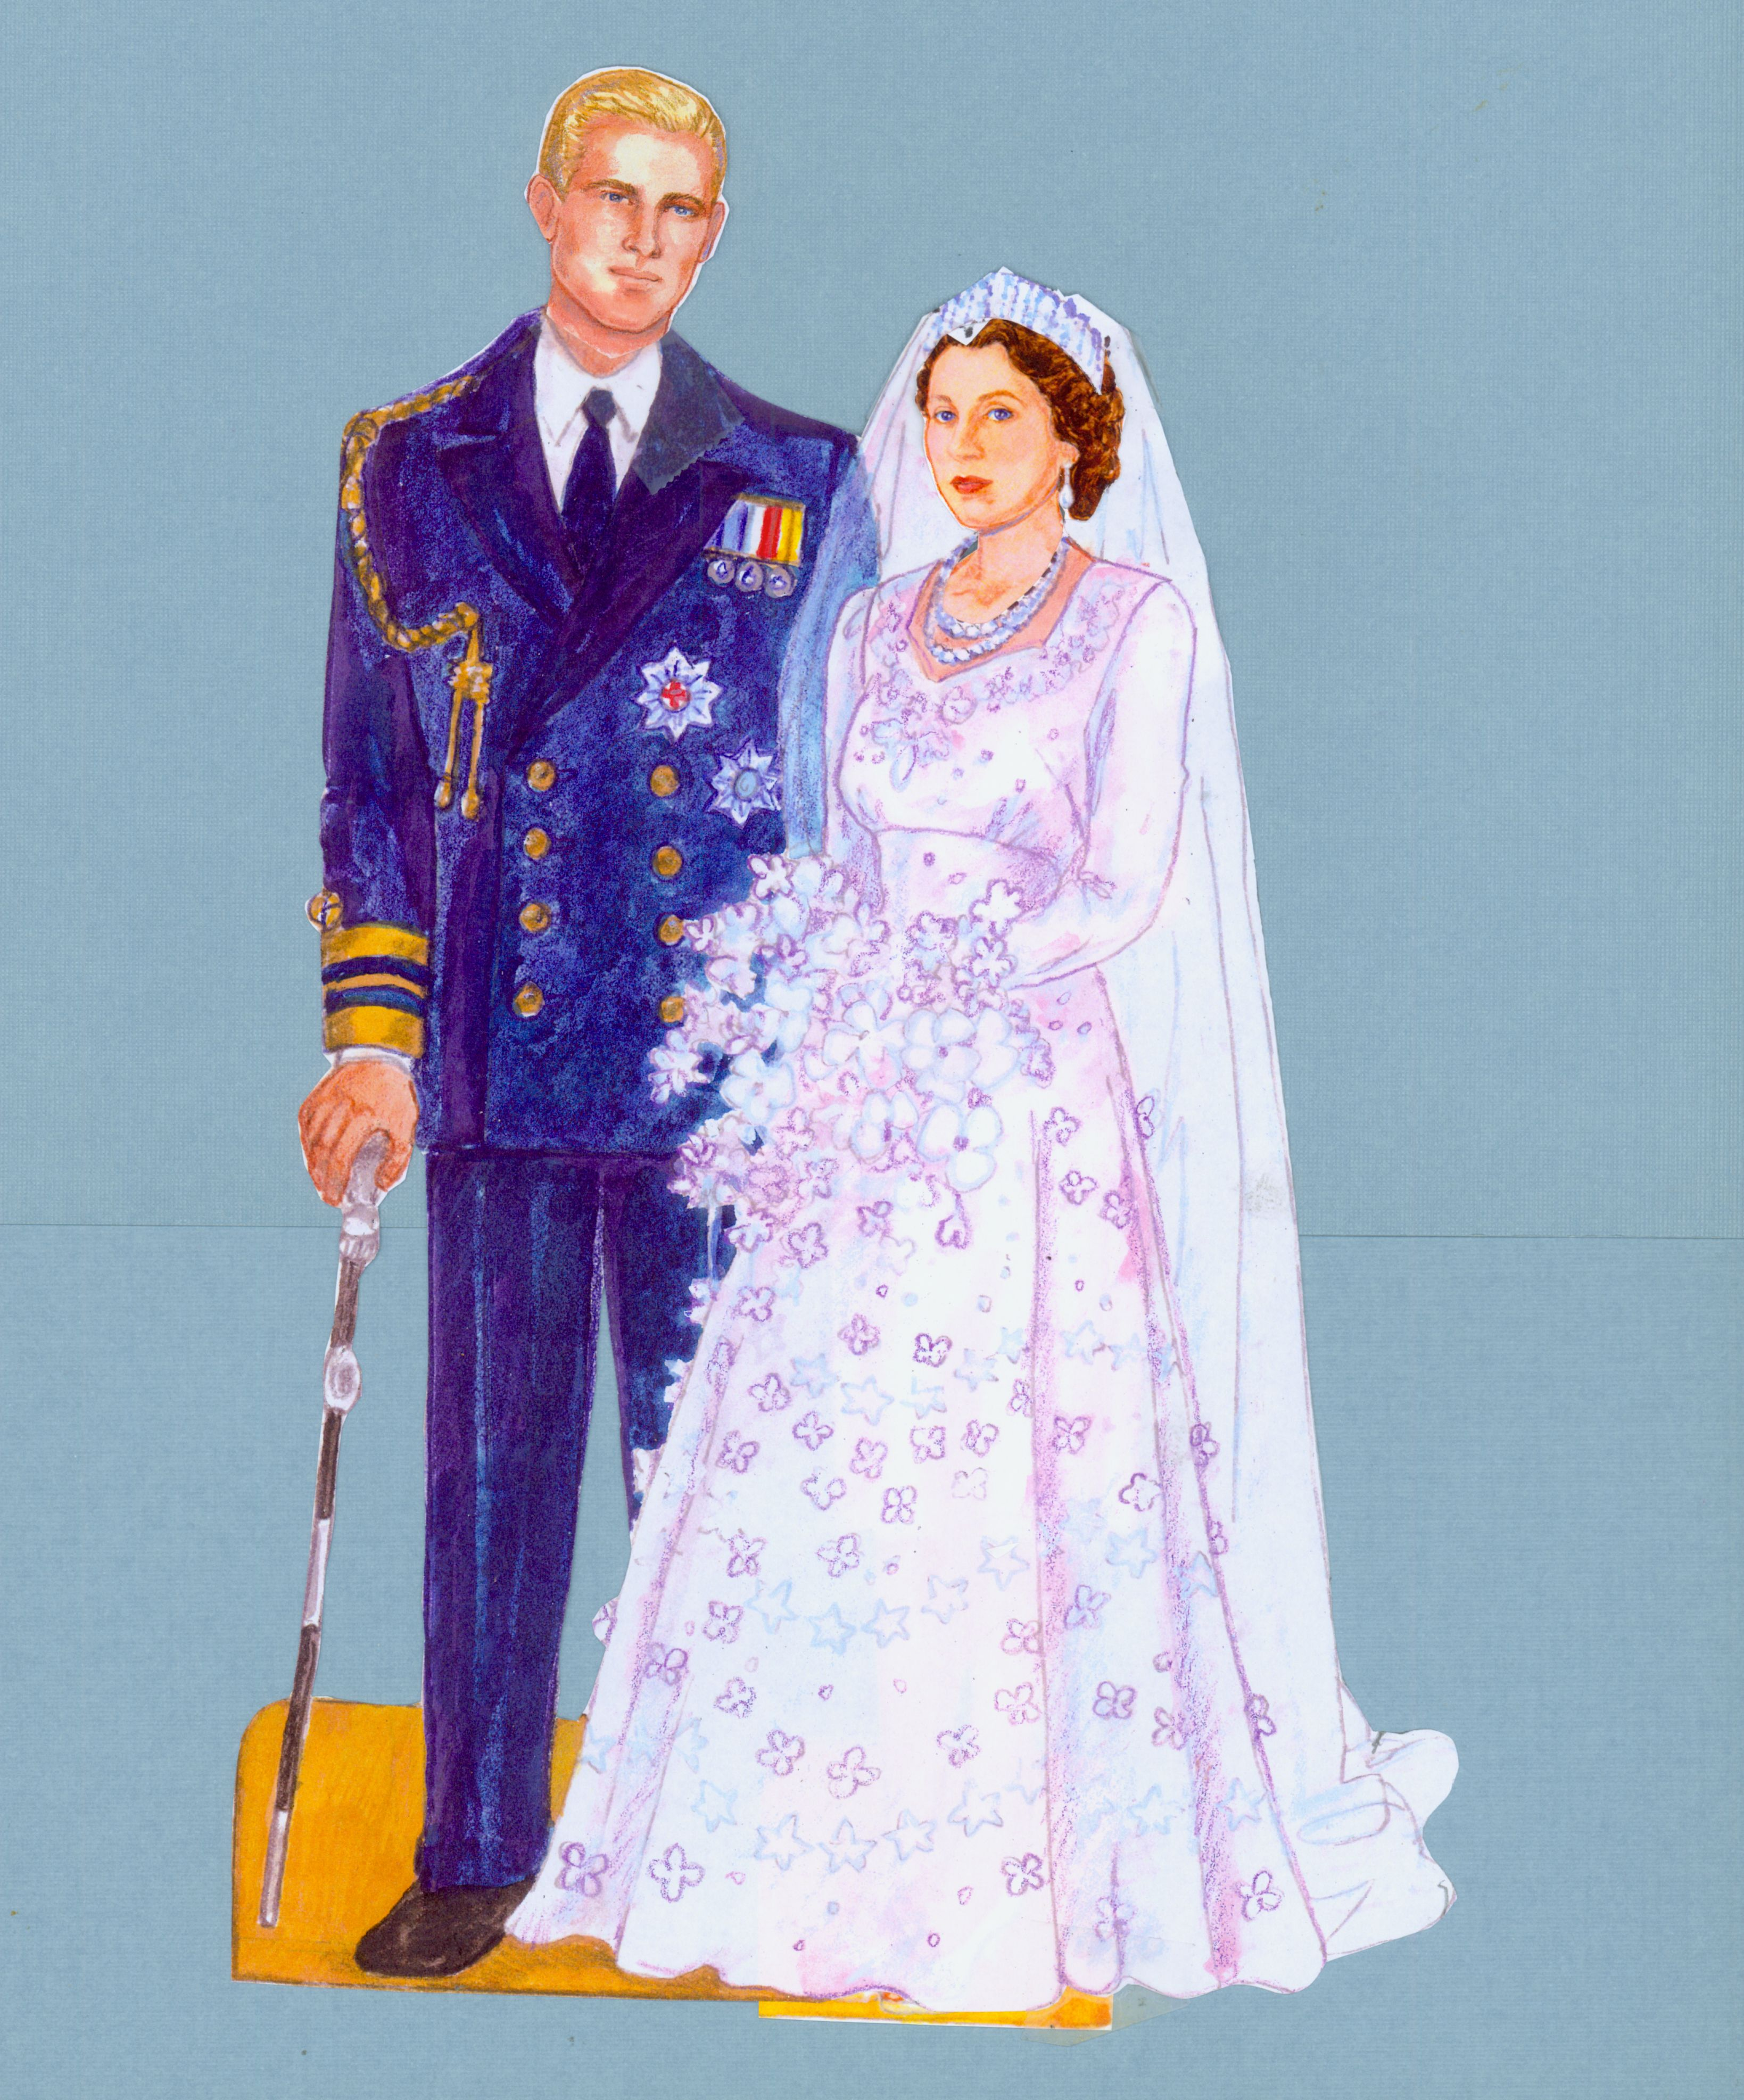 Queen elizabeth green dress  Princess Elizabeth and Prince Philip Wedding from